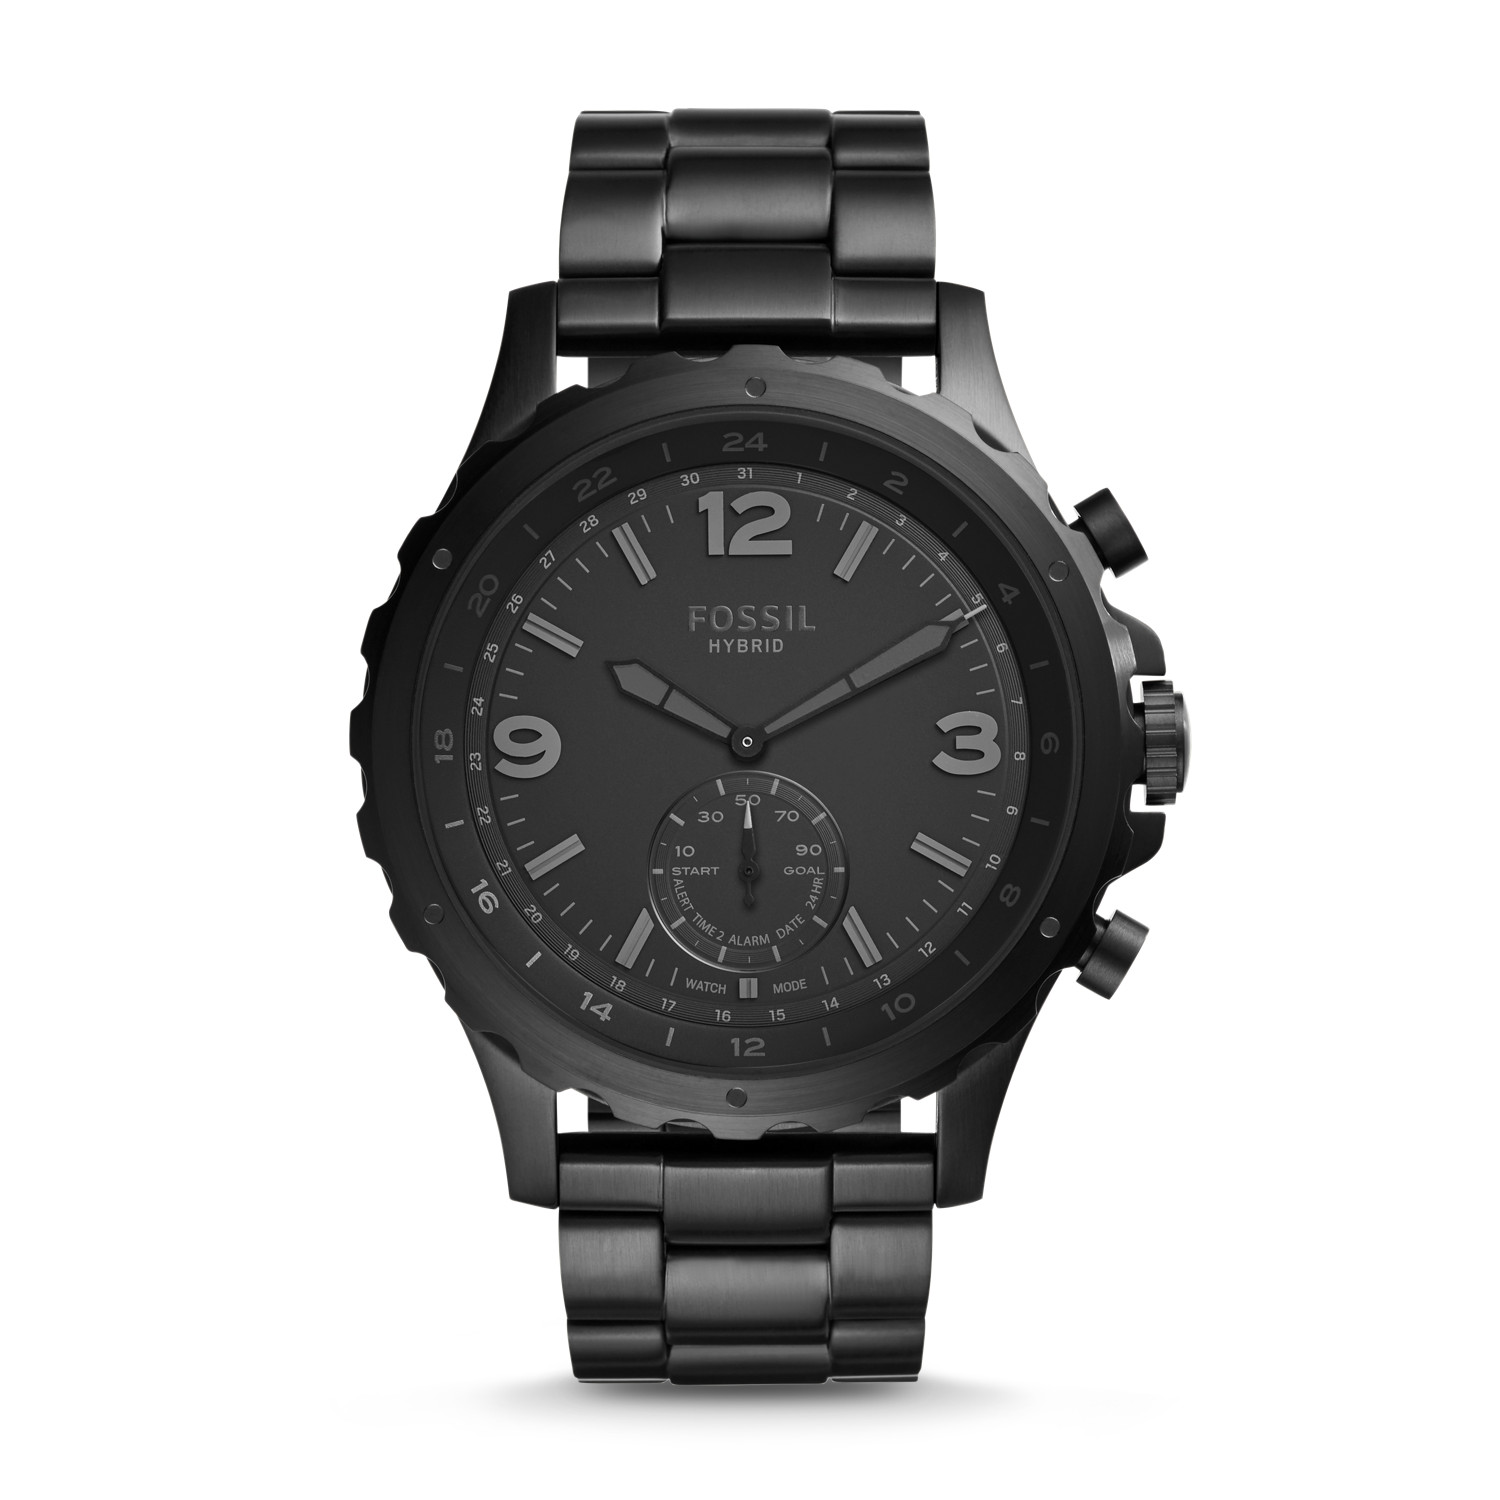 b10f60994eef Hybrid Smartwatch - Nate Black Stainless Steel - Fossil